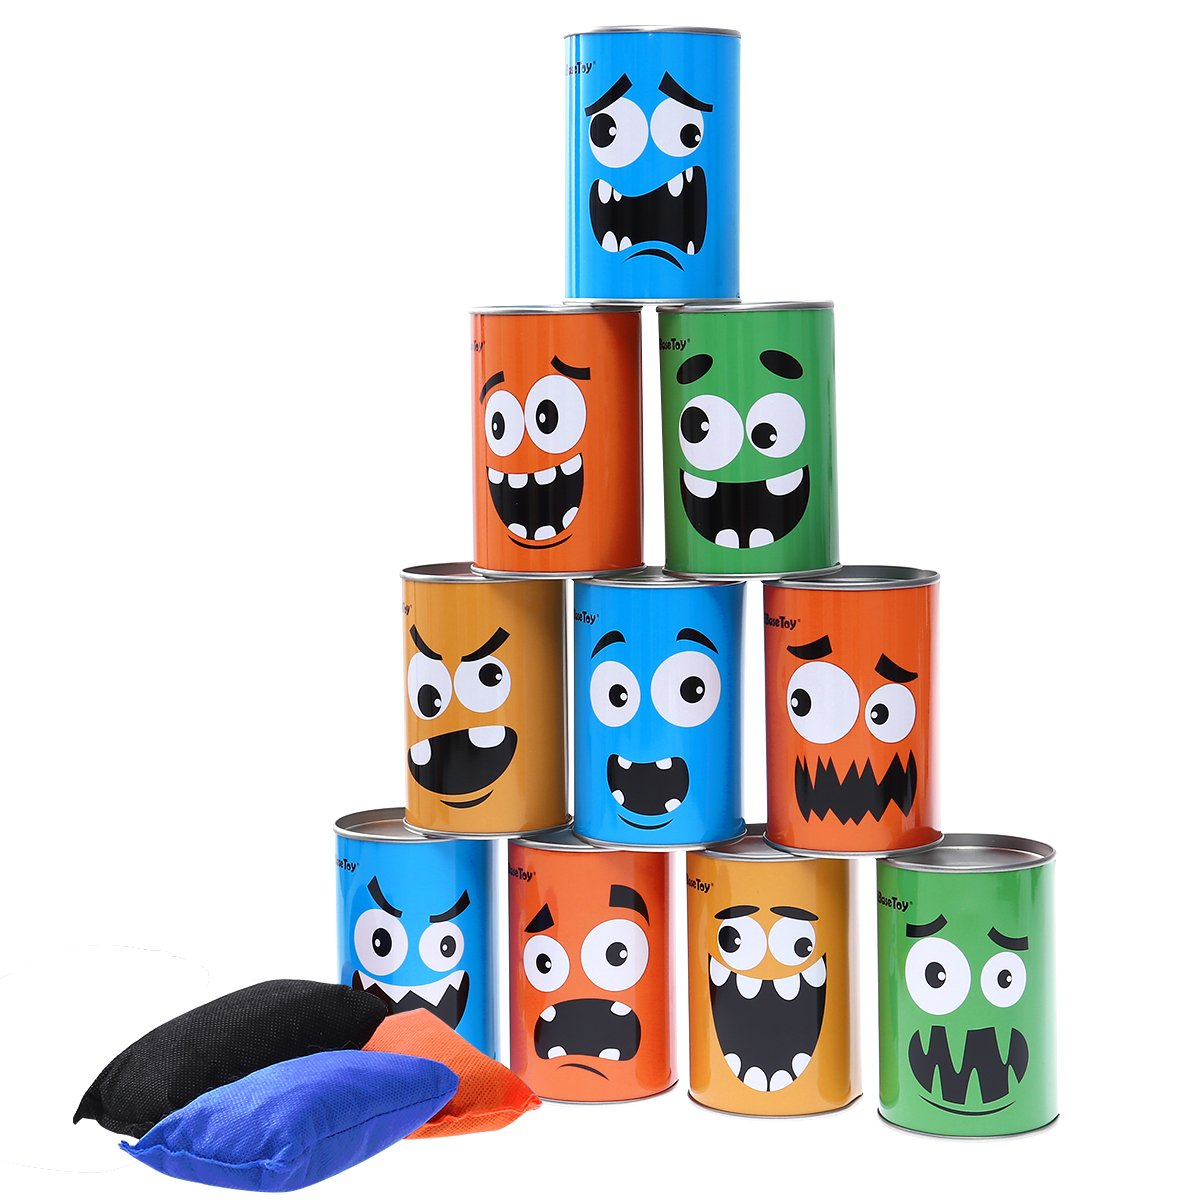 iBaseToy Carnival Games Bean Bag Toss Game for Kids & Adults - Carnival Party Supplies Easter Games Tin Can Alley Game for Kids Birthday Party Games- 10 Tin Cans and 3 Beanbags Included by iBaseToy